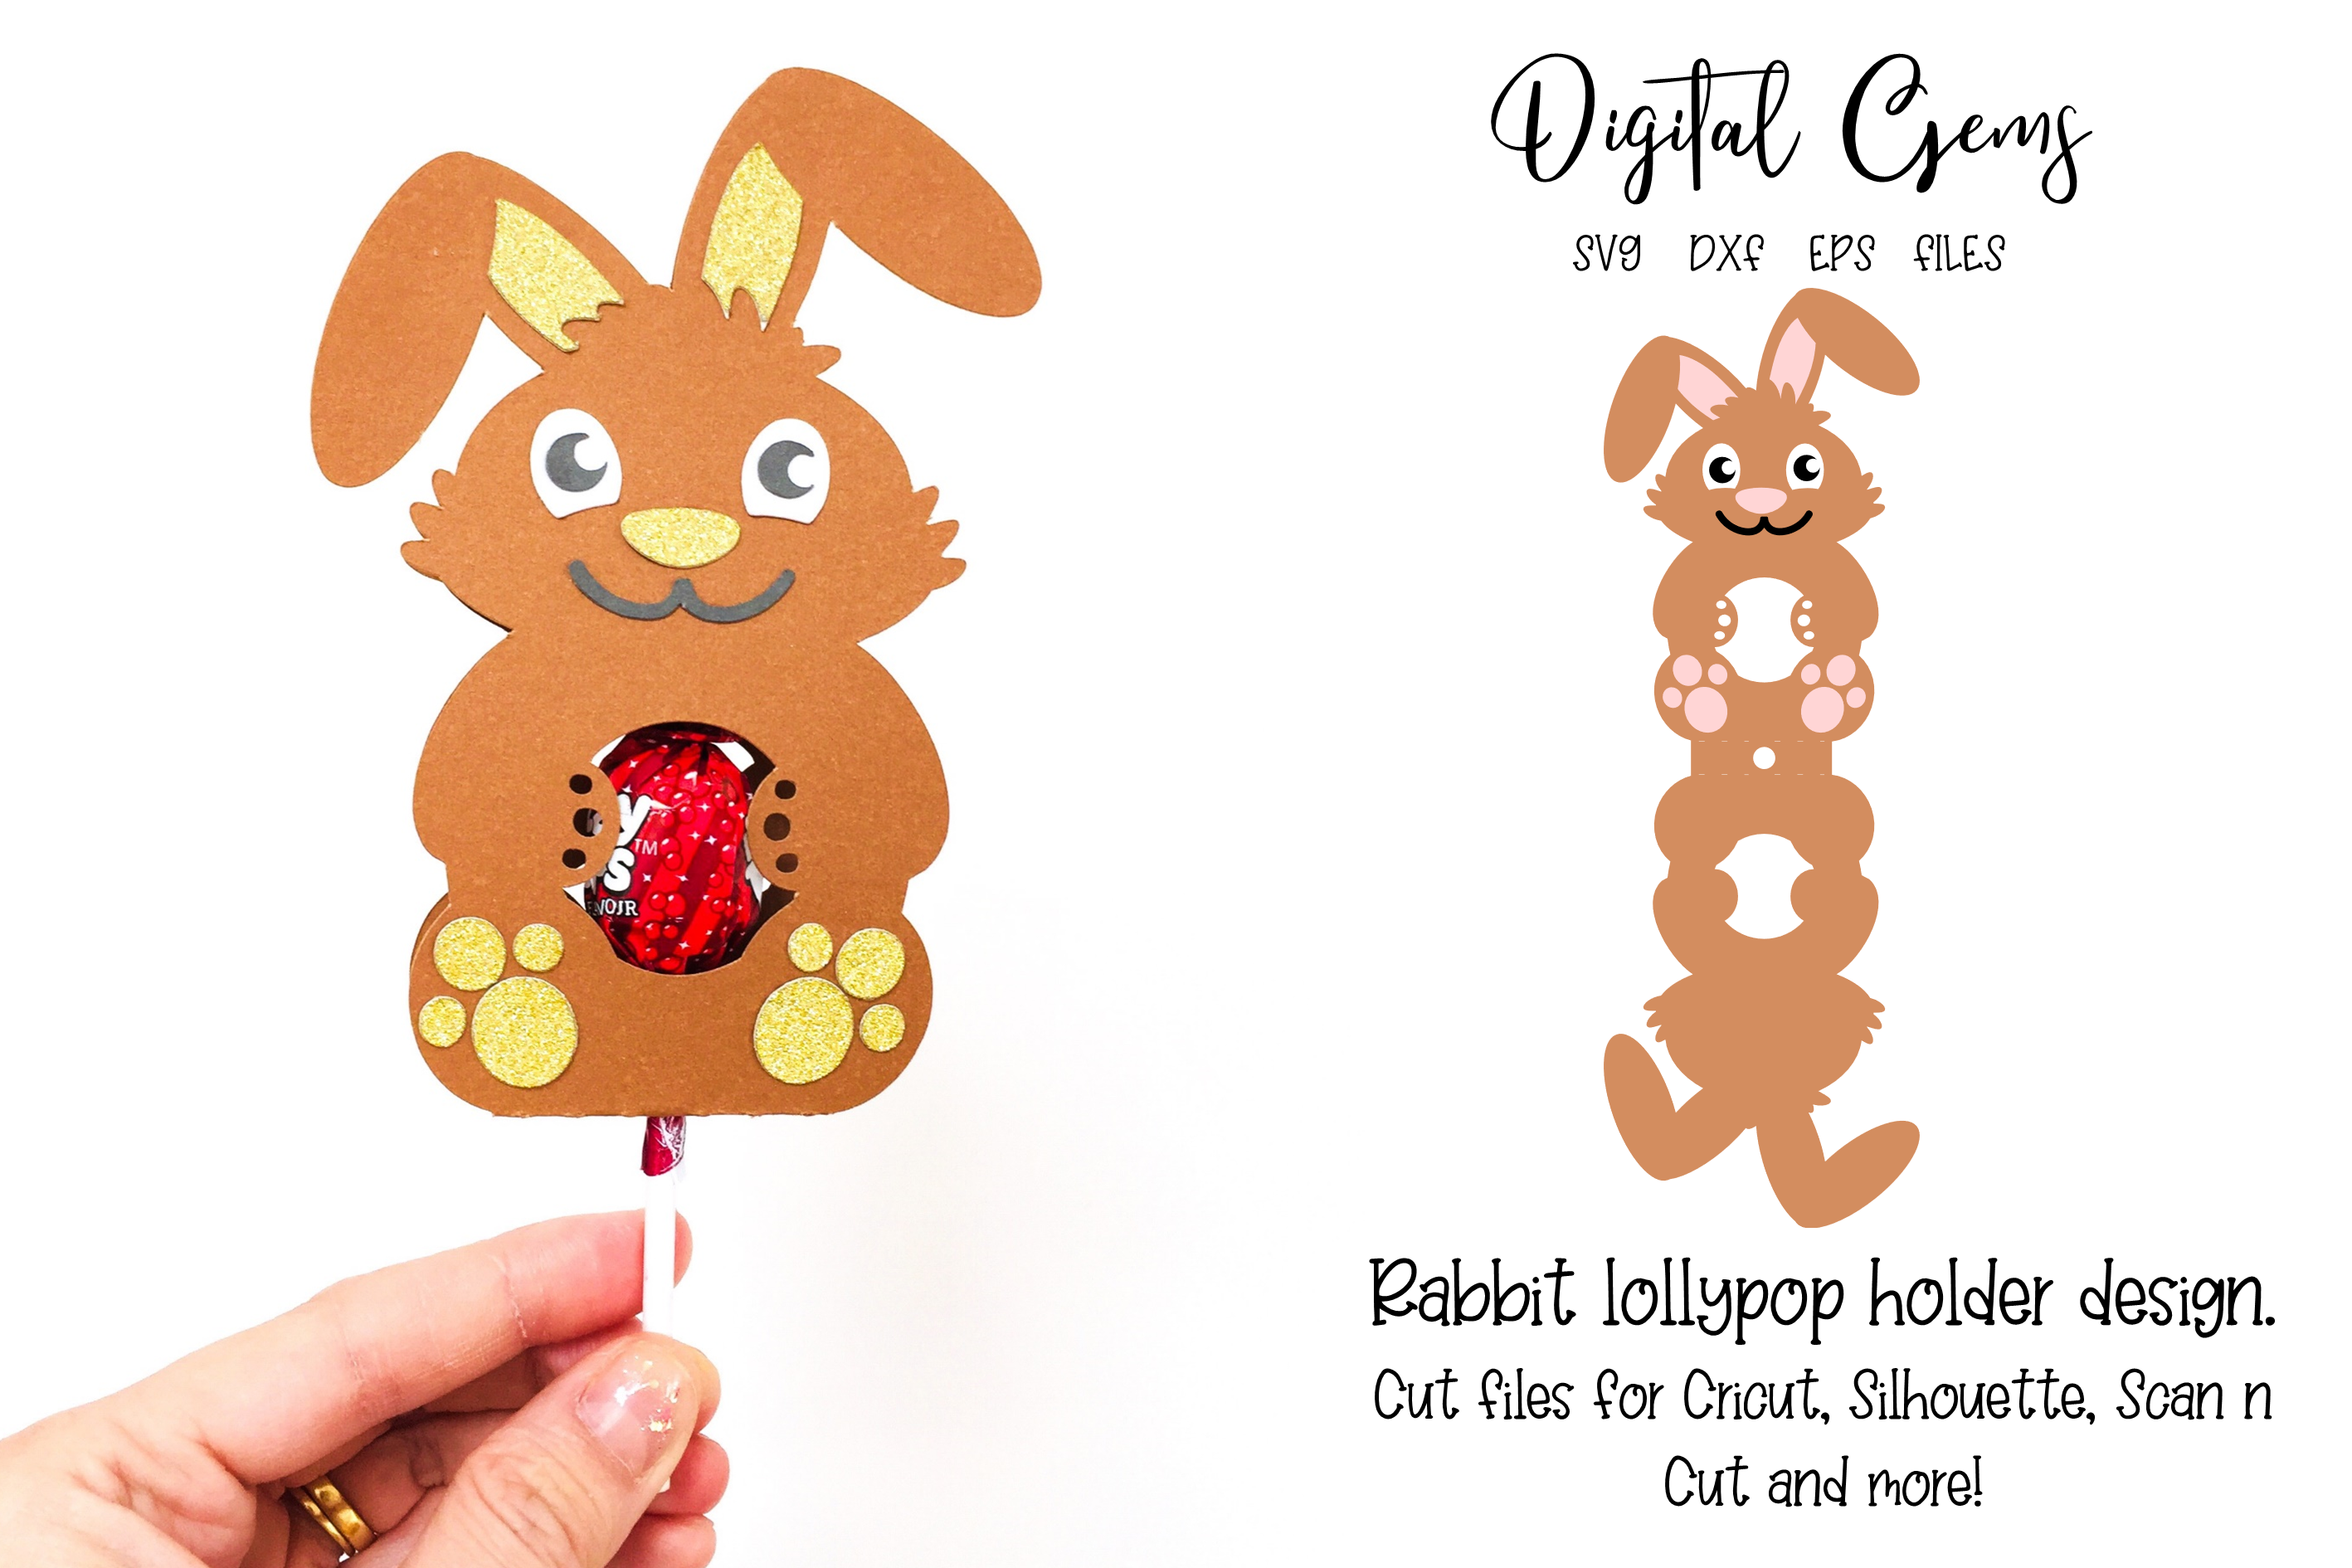 Download Free Rabbit Lollipop Holder Design Graphic By Digital Gems Creative for Cricut Explore, Silhouette and other cutting machines.